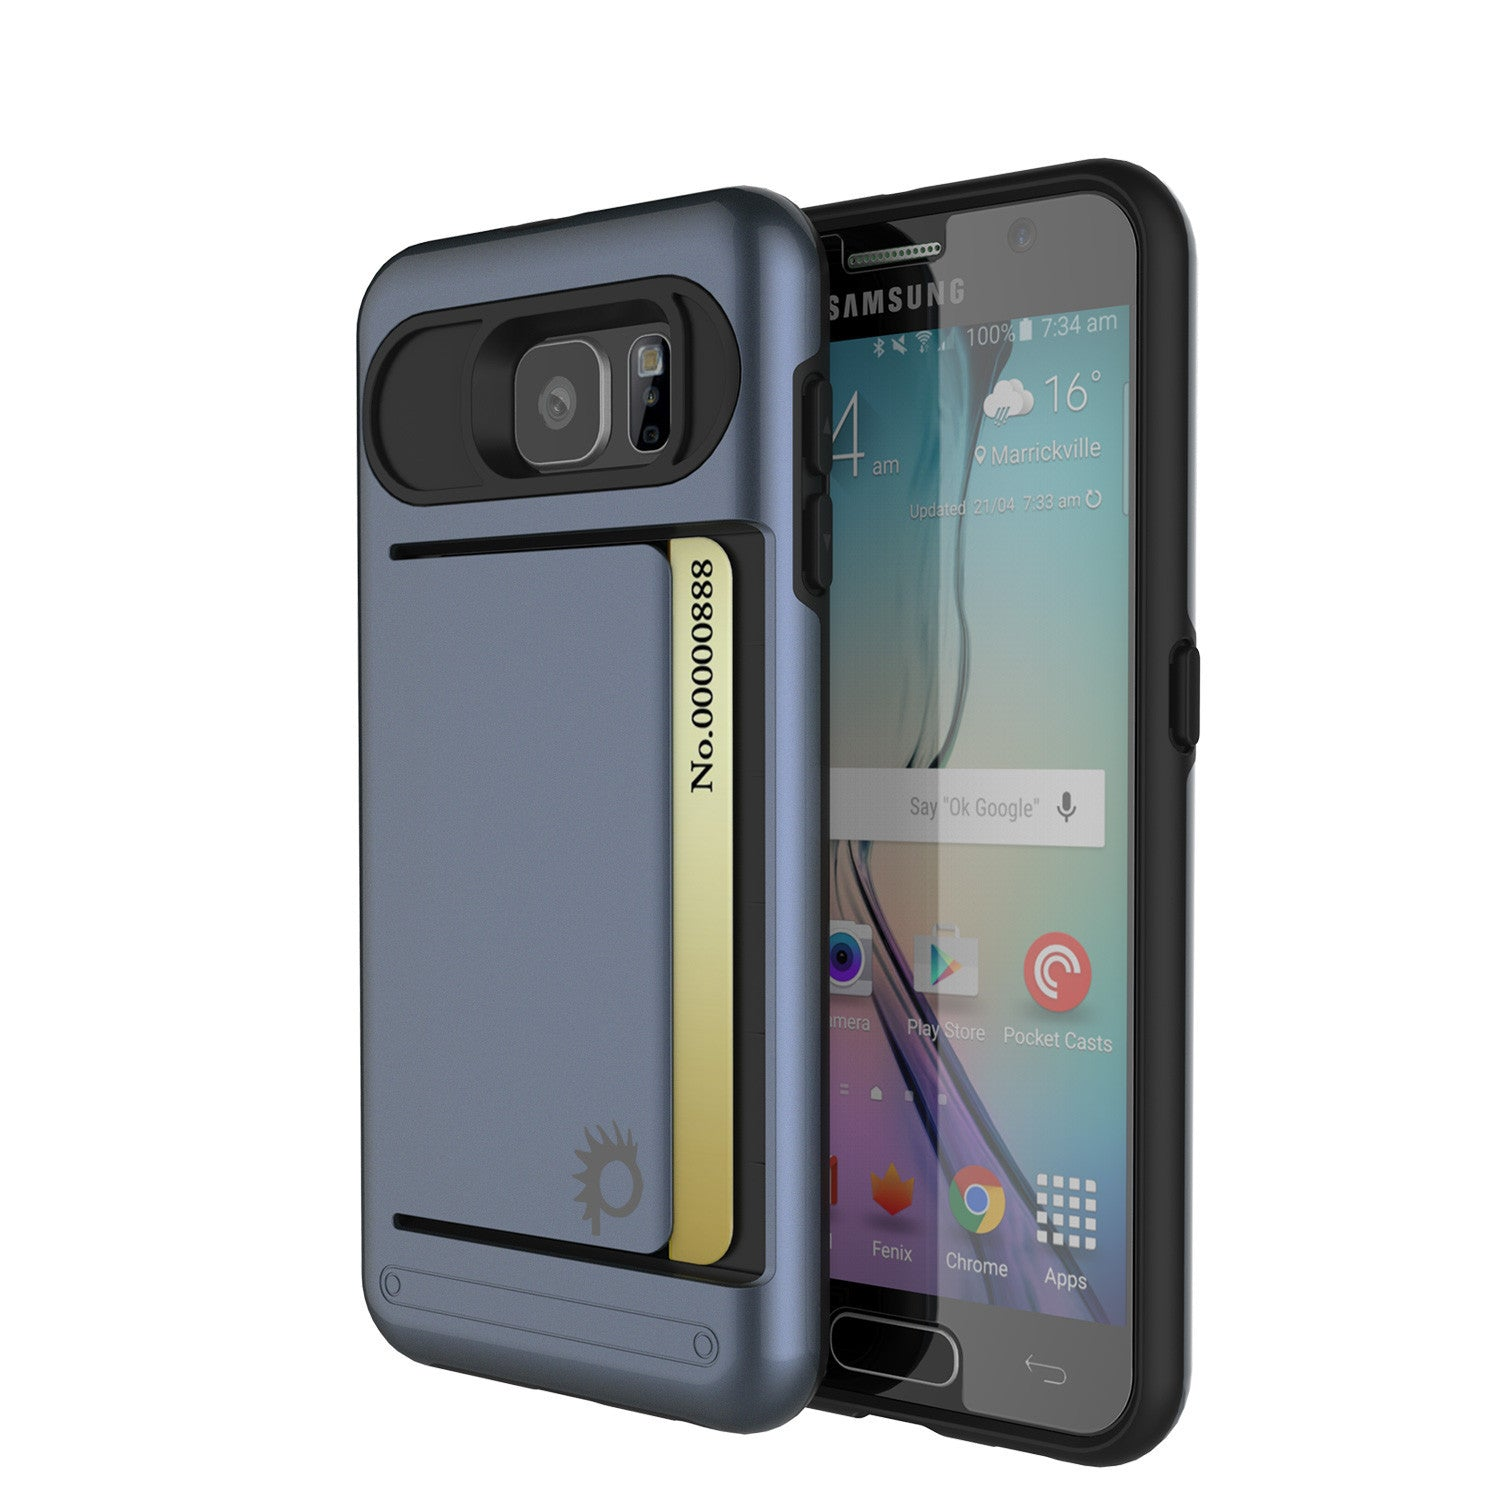 Galaxy S6 EDGE Plus Case PunkCase CLUTCH Navy Series Slim Armor Soft Cover Case w/ Screen Protector